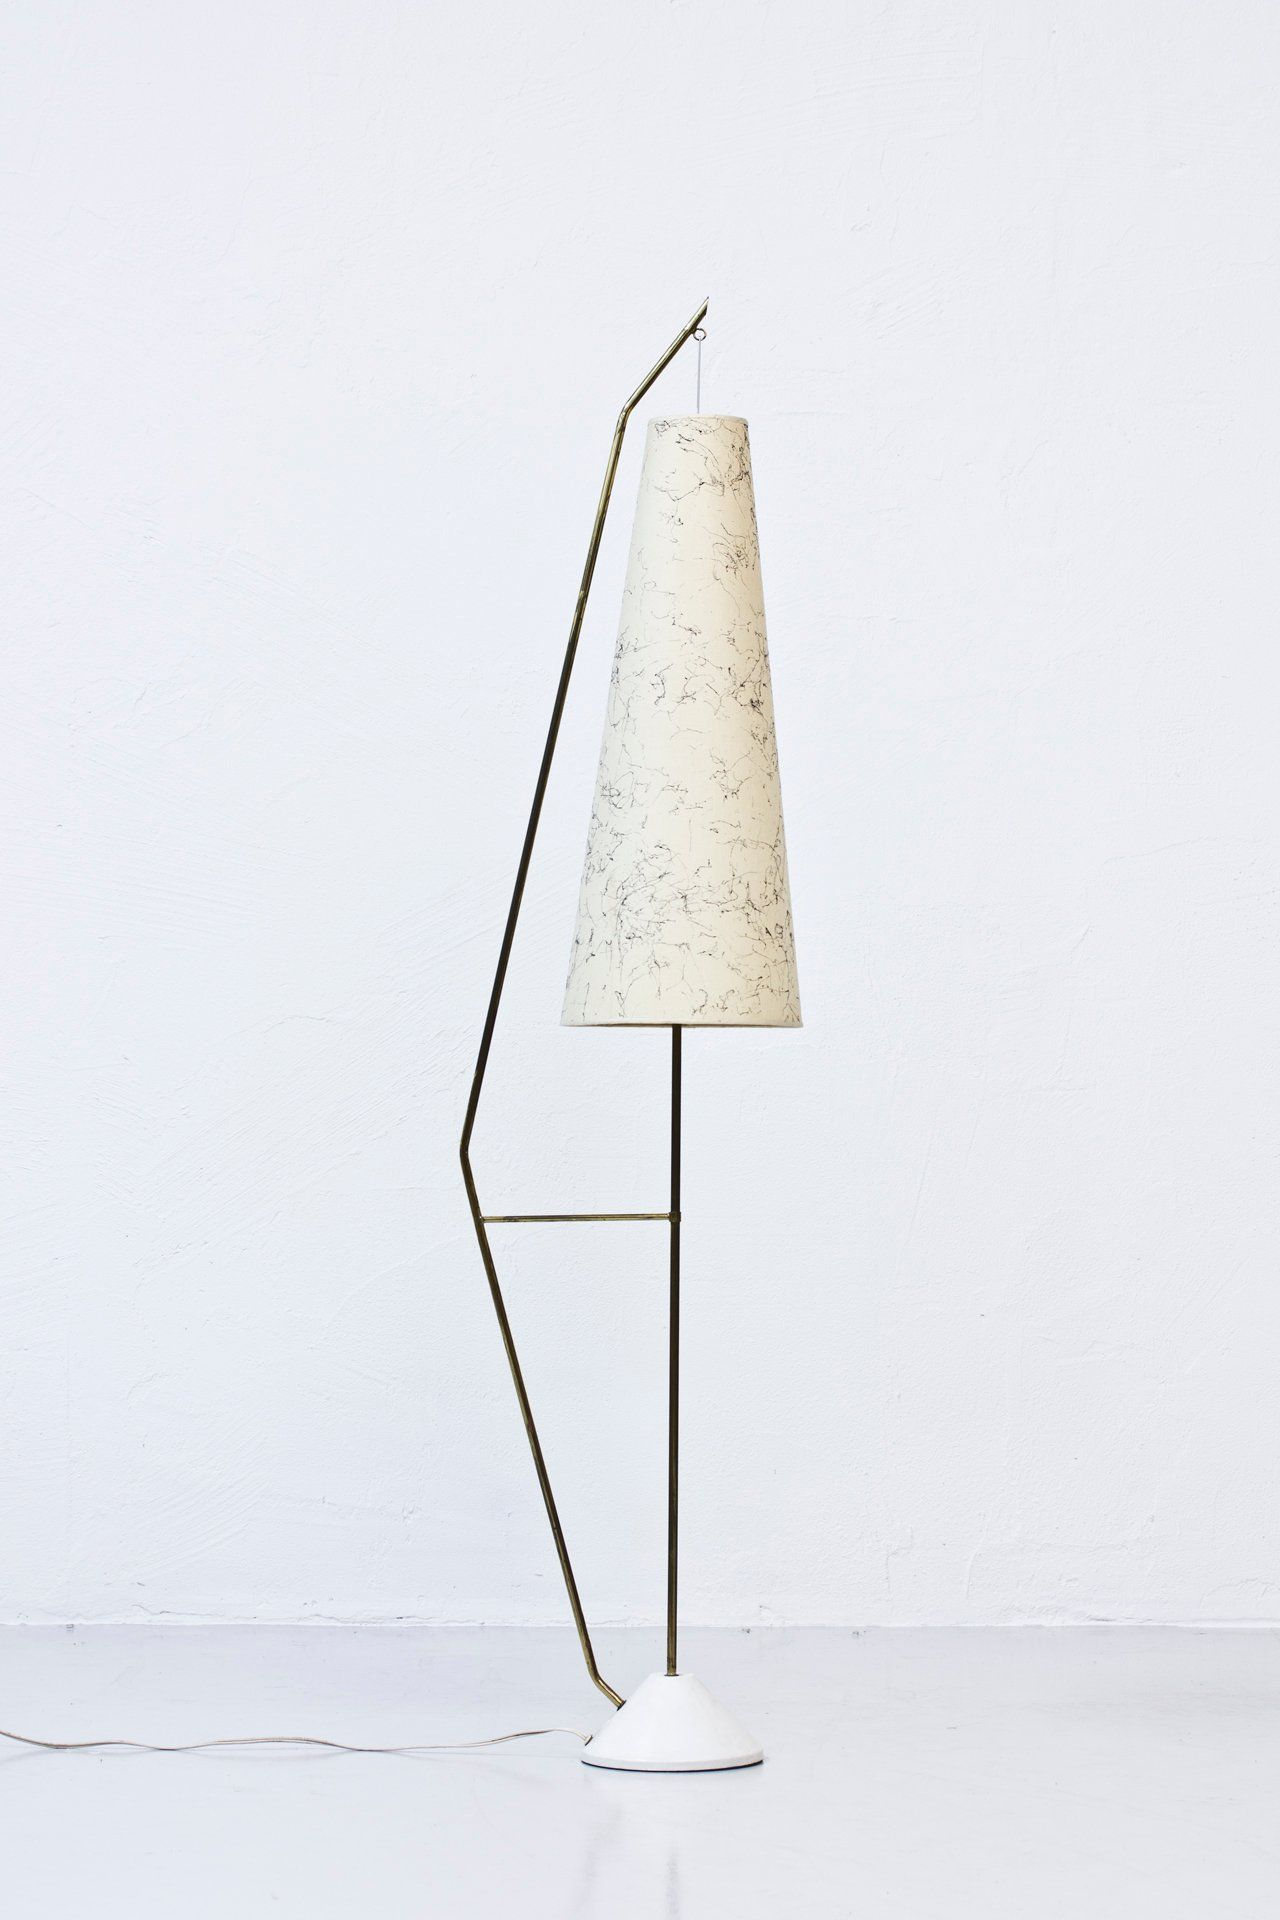 Modernist 1950S Floor Lamp By Modernisten Modernist Geometrical Floor Lamp